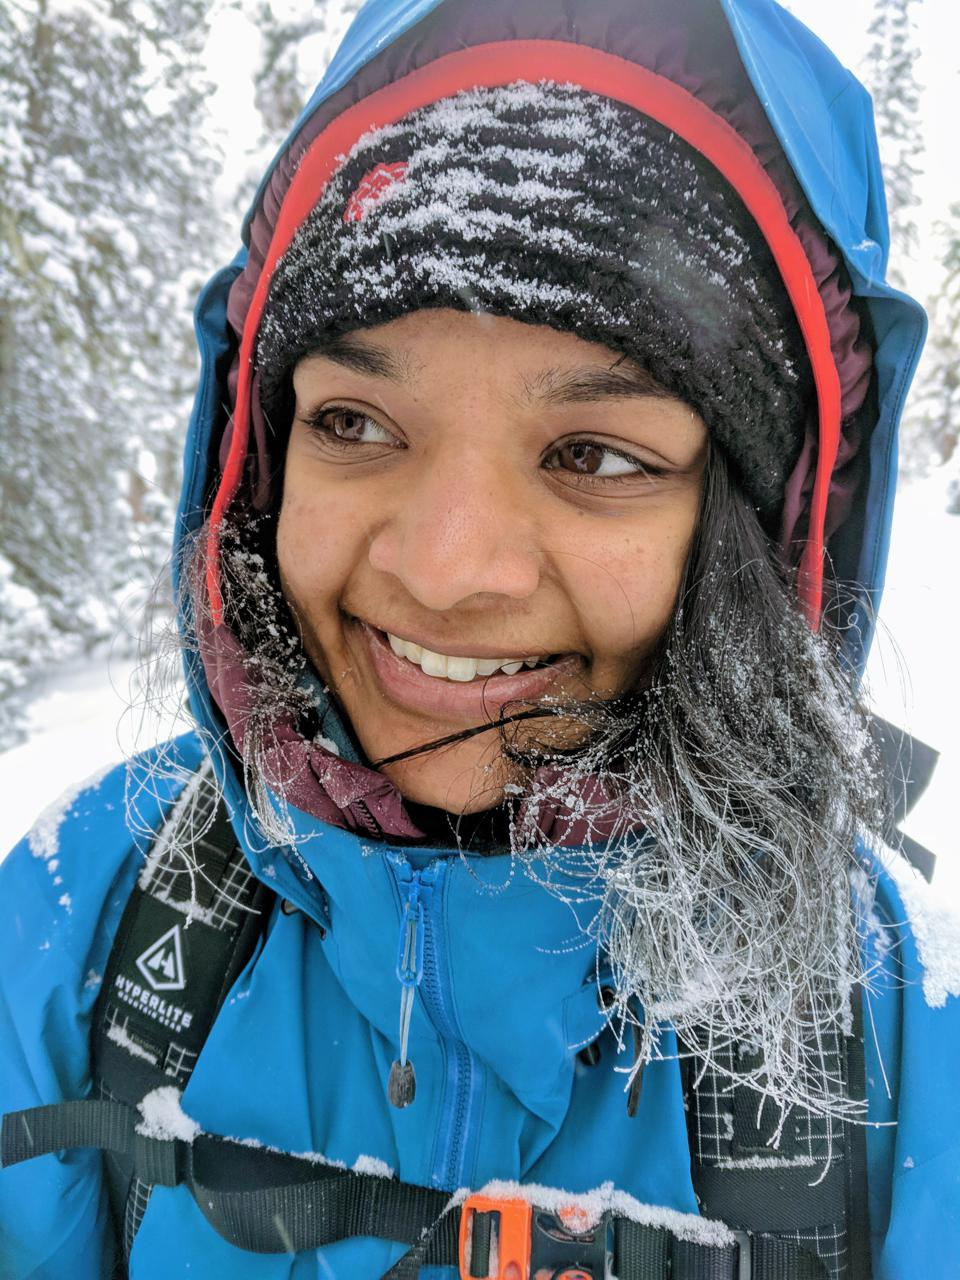 Amiti with snow brushed hair in winter